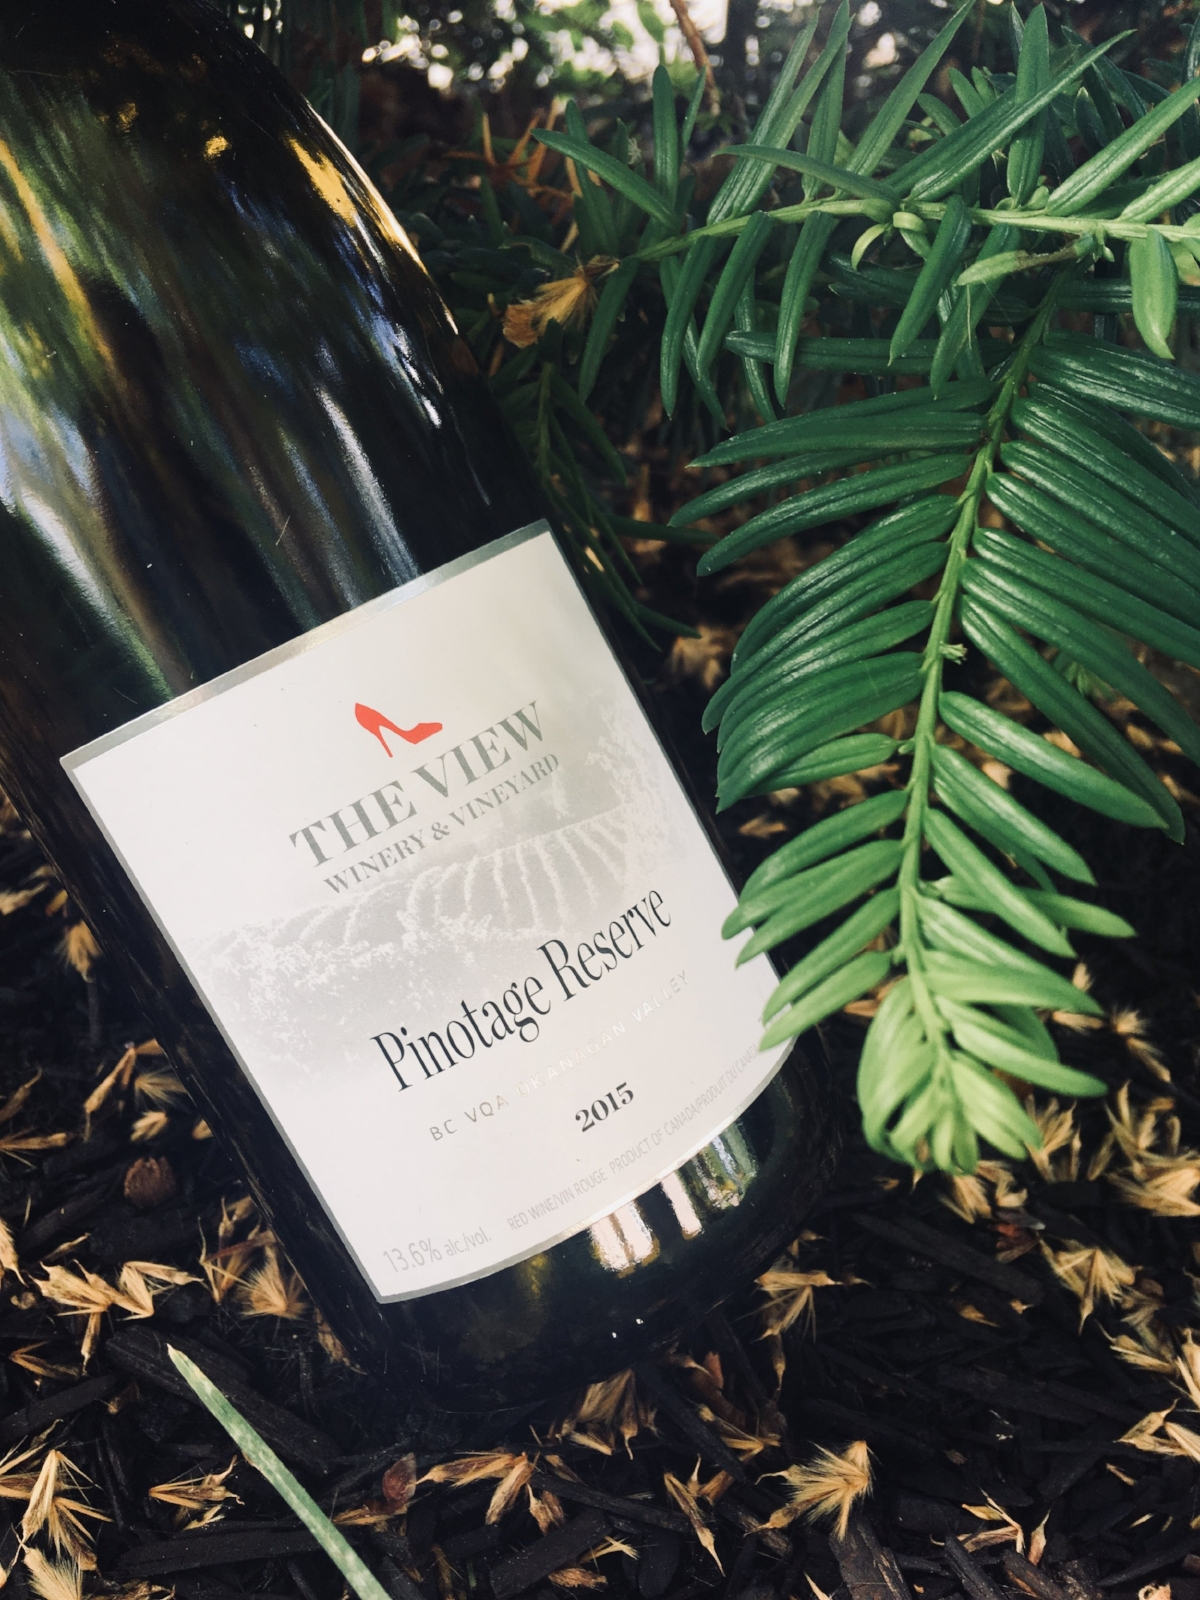 The View's 2015 Pinotage Reserve, produced from 27-year old Pinotage Vines.